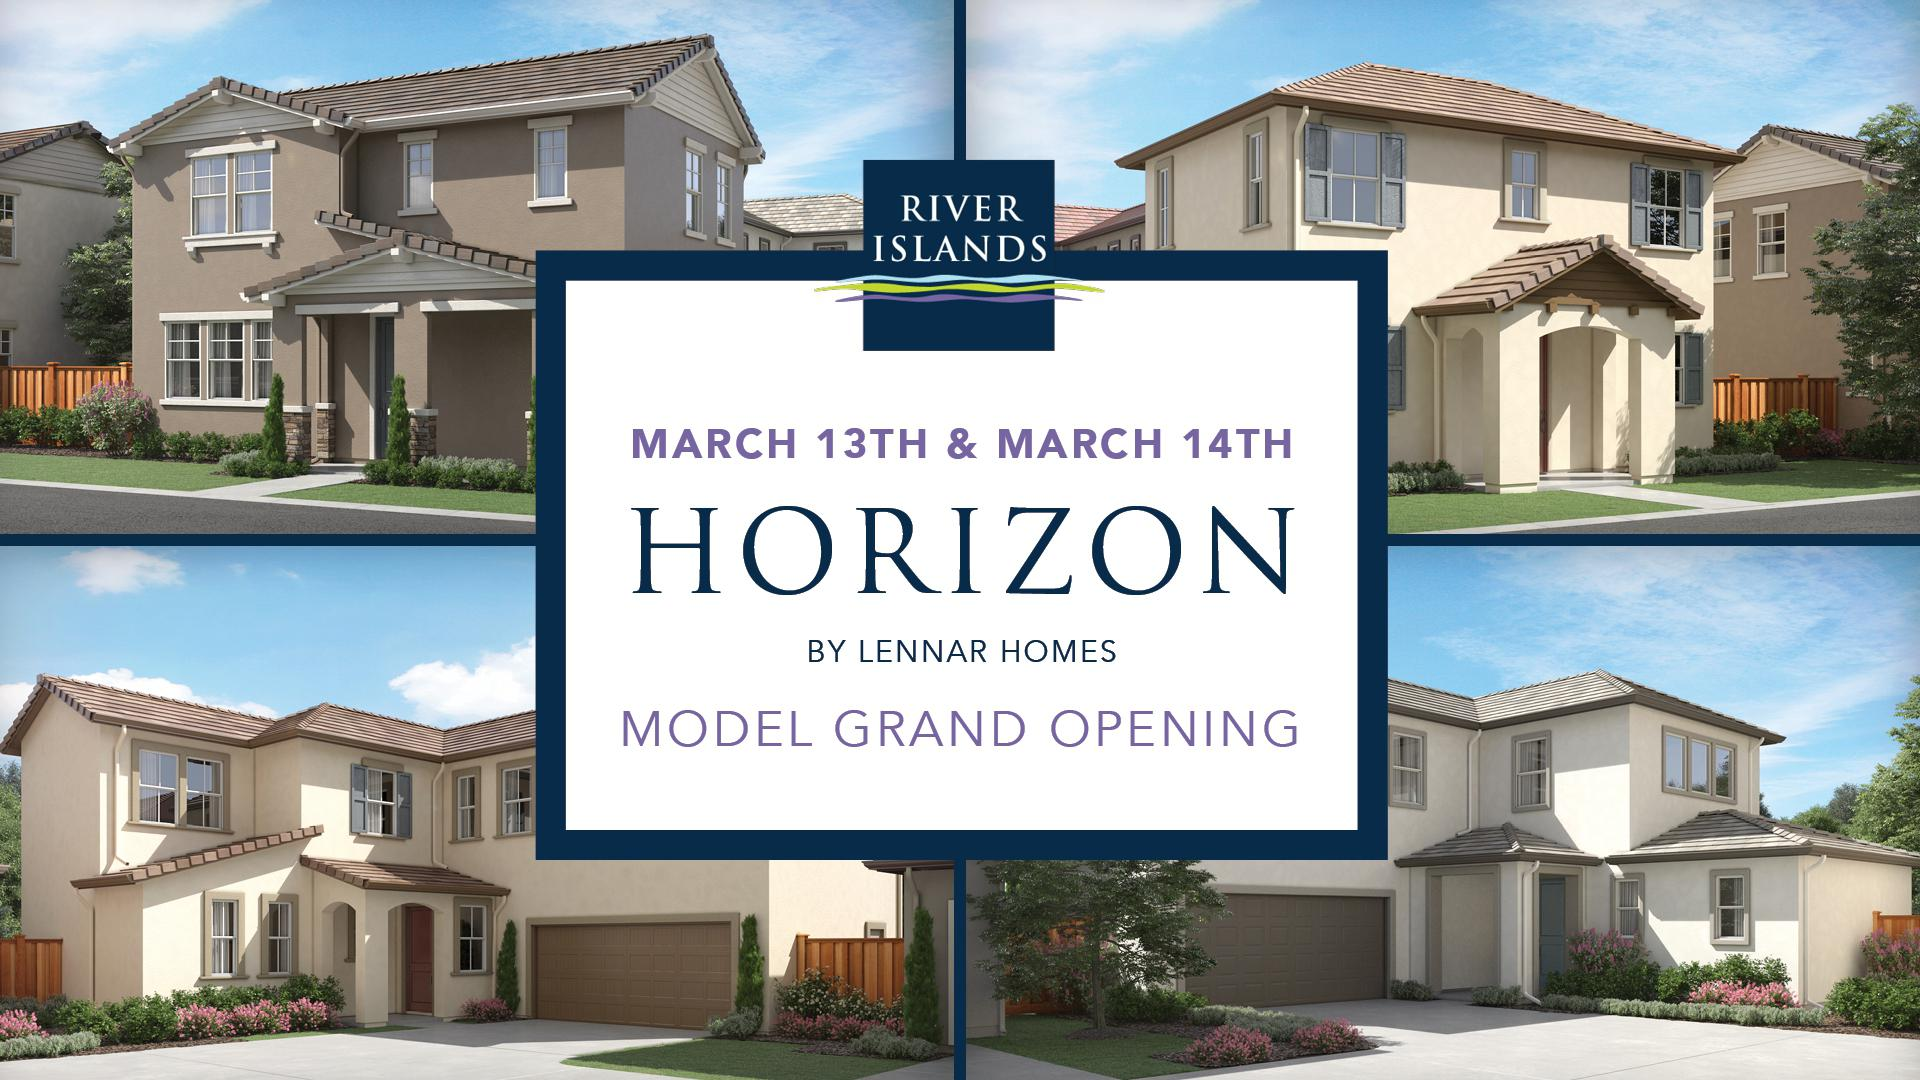 Horizon by Lennar Homes Grand Opening On March 13 & 14th, 2021